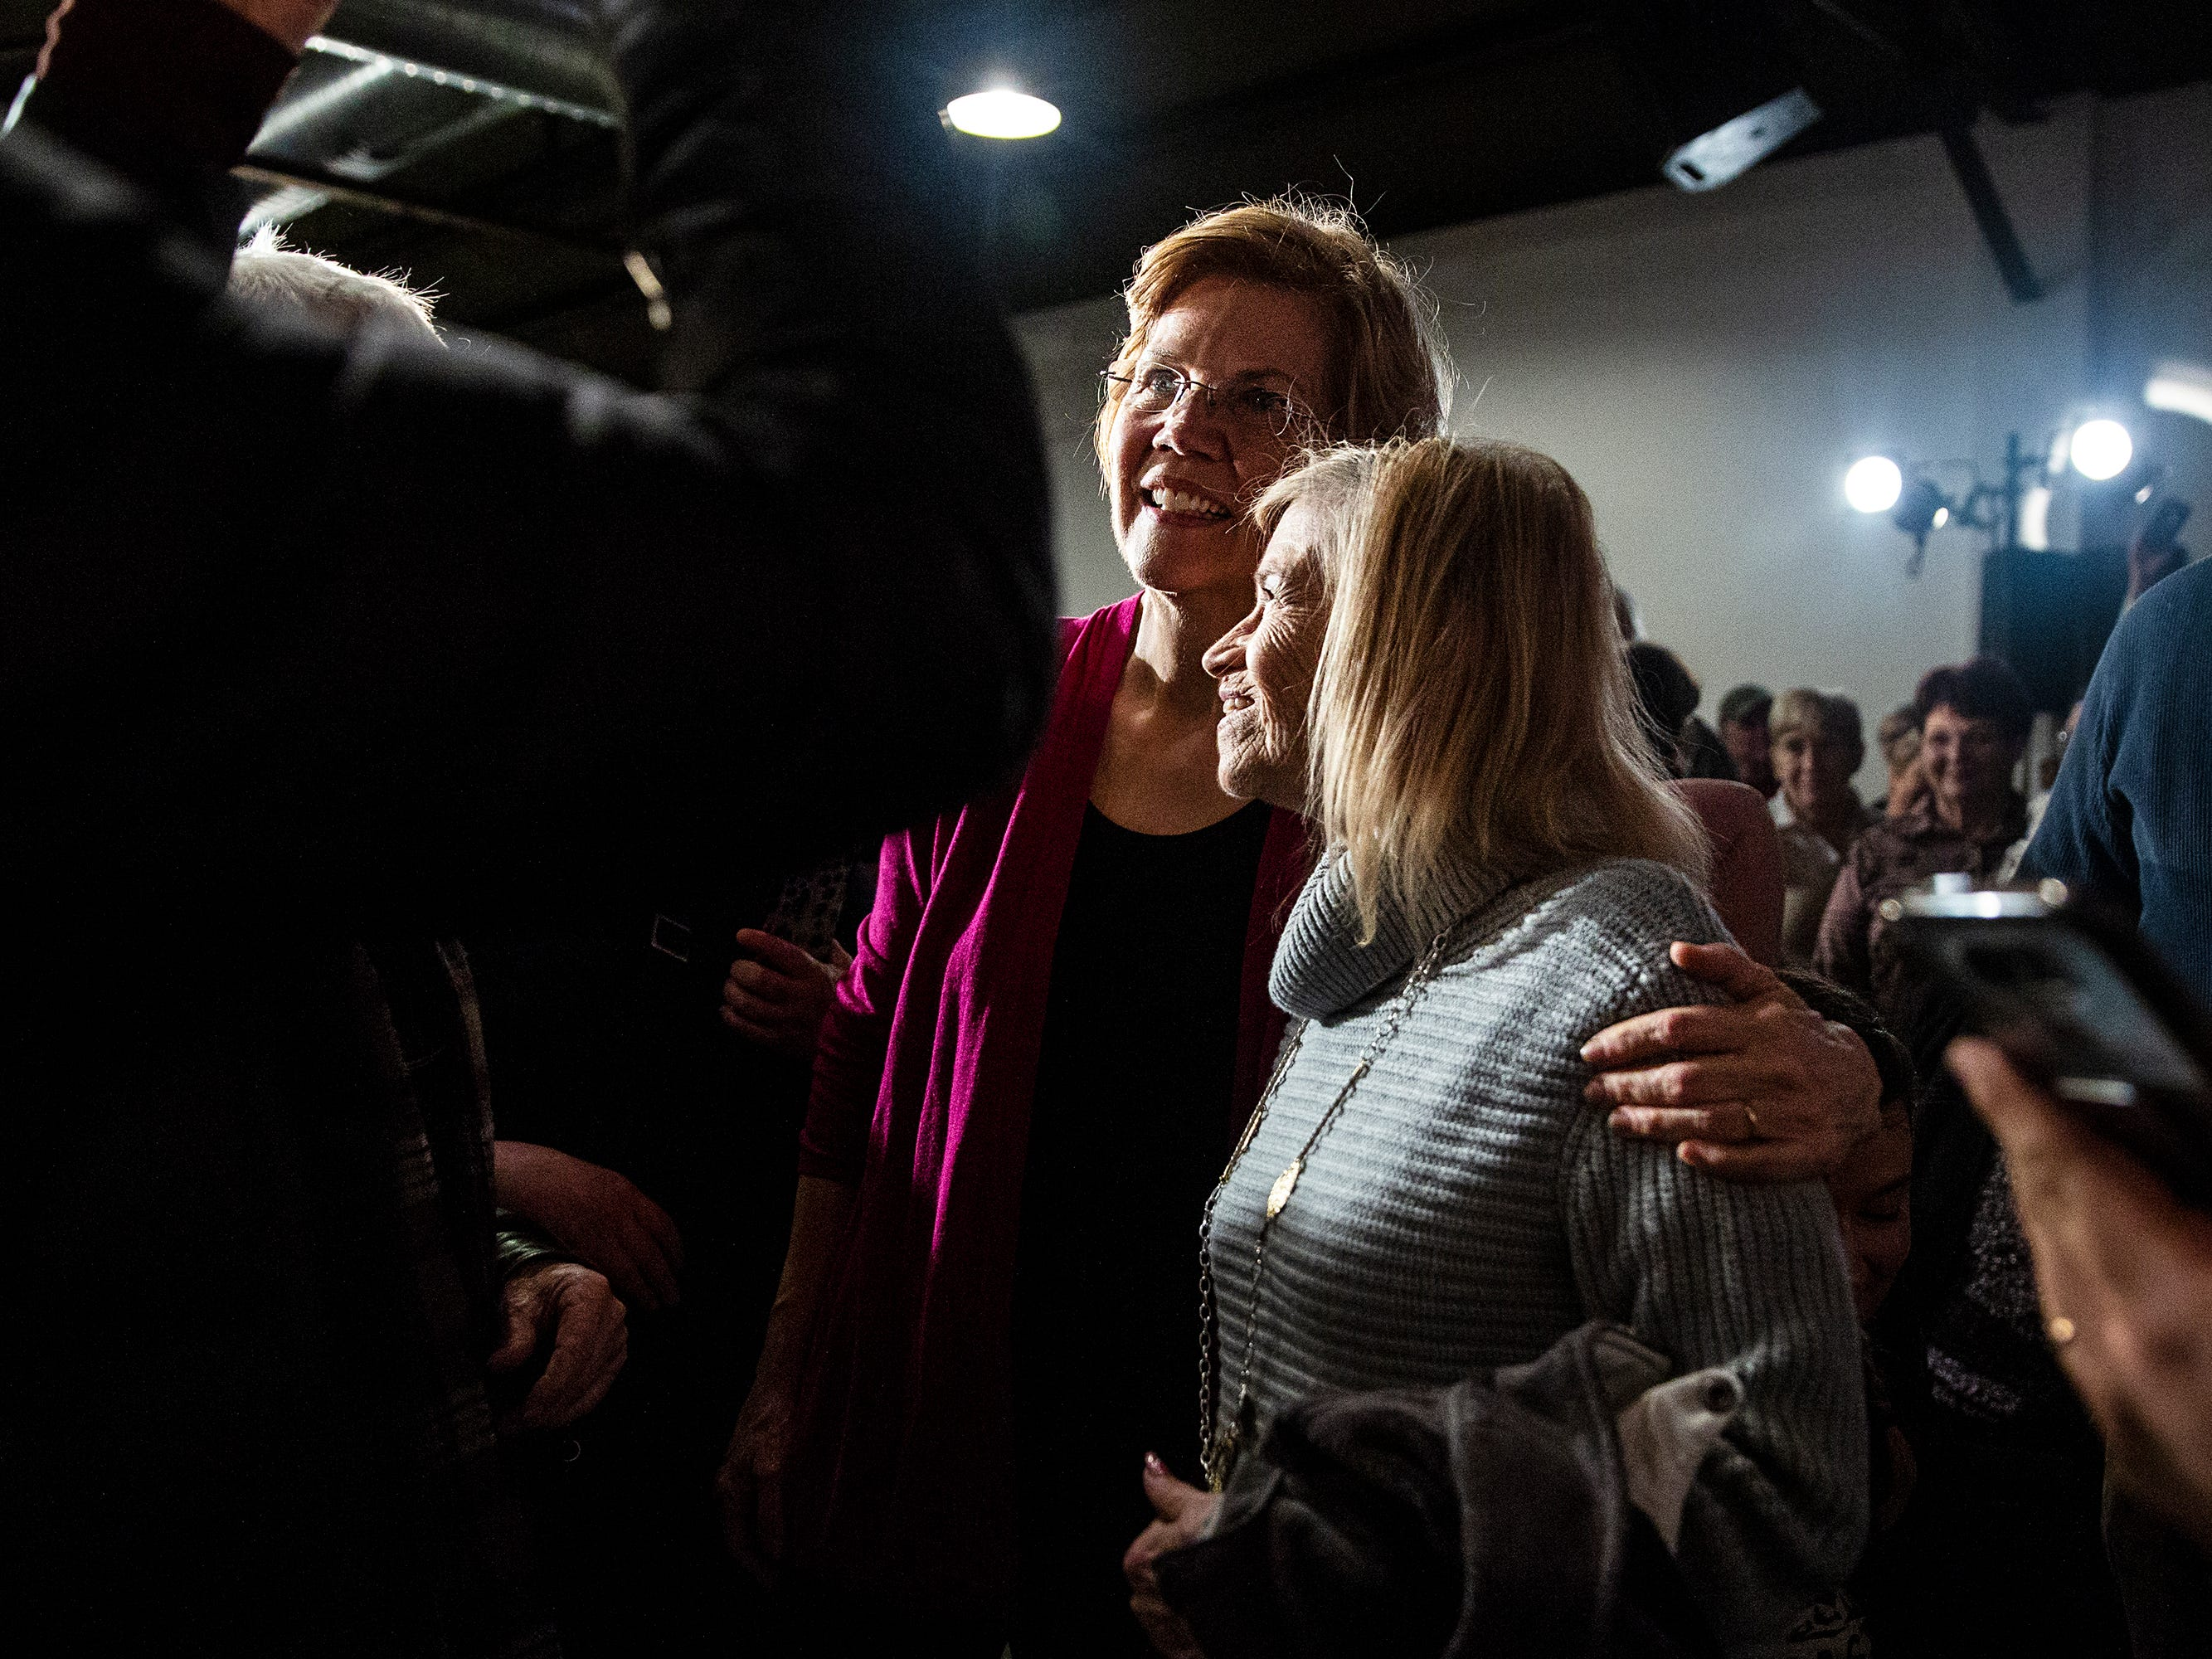 Elizabeth Warren, a potential 2020 presidential candidate, poses for photos on Saturday, Jan. 5, 2019, after speaking in Des Moines. She spent the weekend in Iowa also making stops in Council Bluffs, Sioux City, Storm Lake and Ankeny.